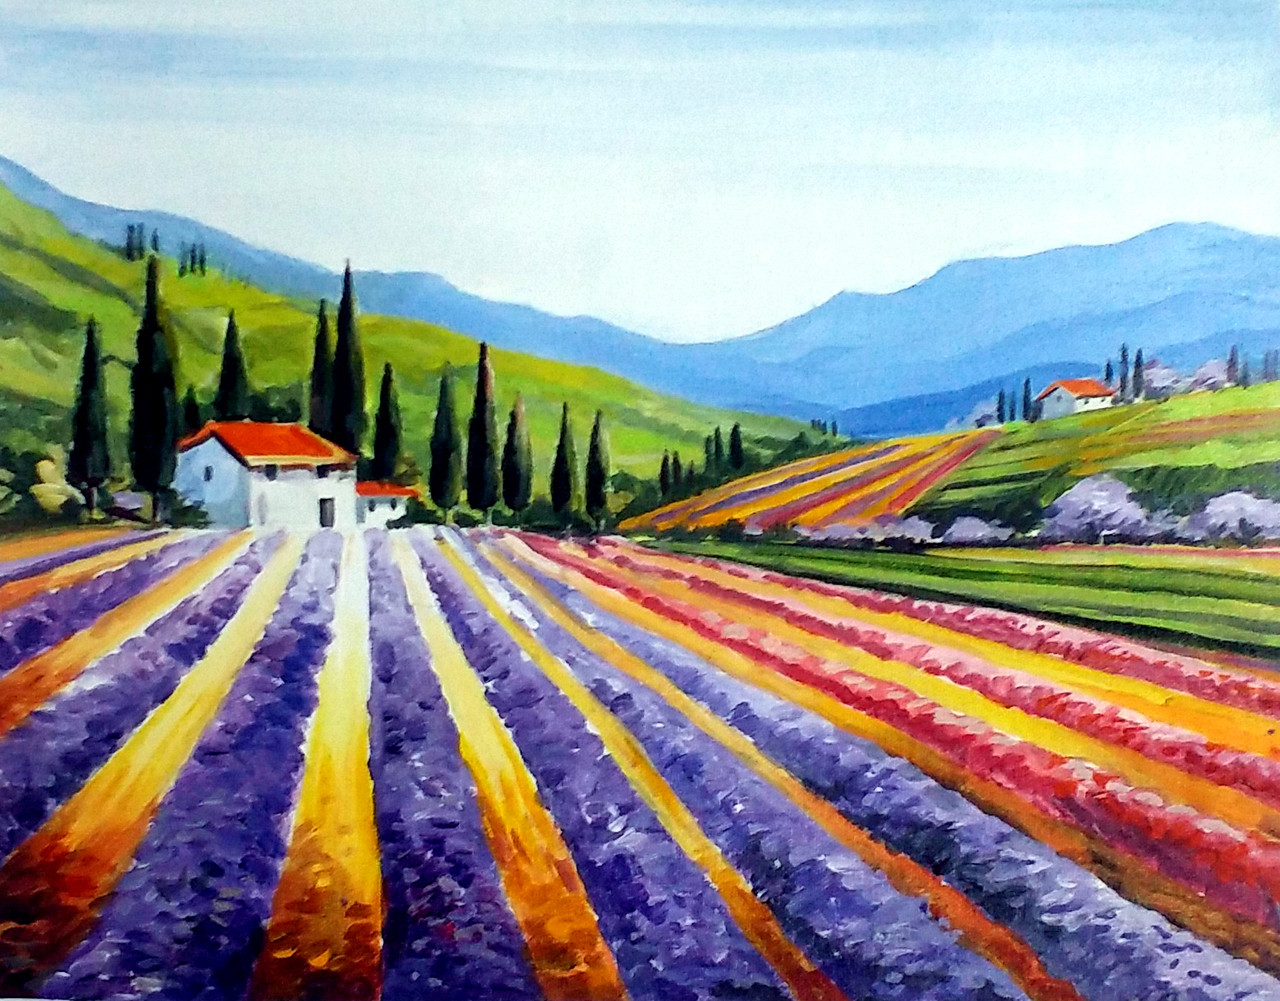 Buy beauty of flowers valley handmade painting by samiran sarkar valleyflowerlandscapeacryliccanvaspaintingnaturebeauty of izmirmasajfo Images